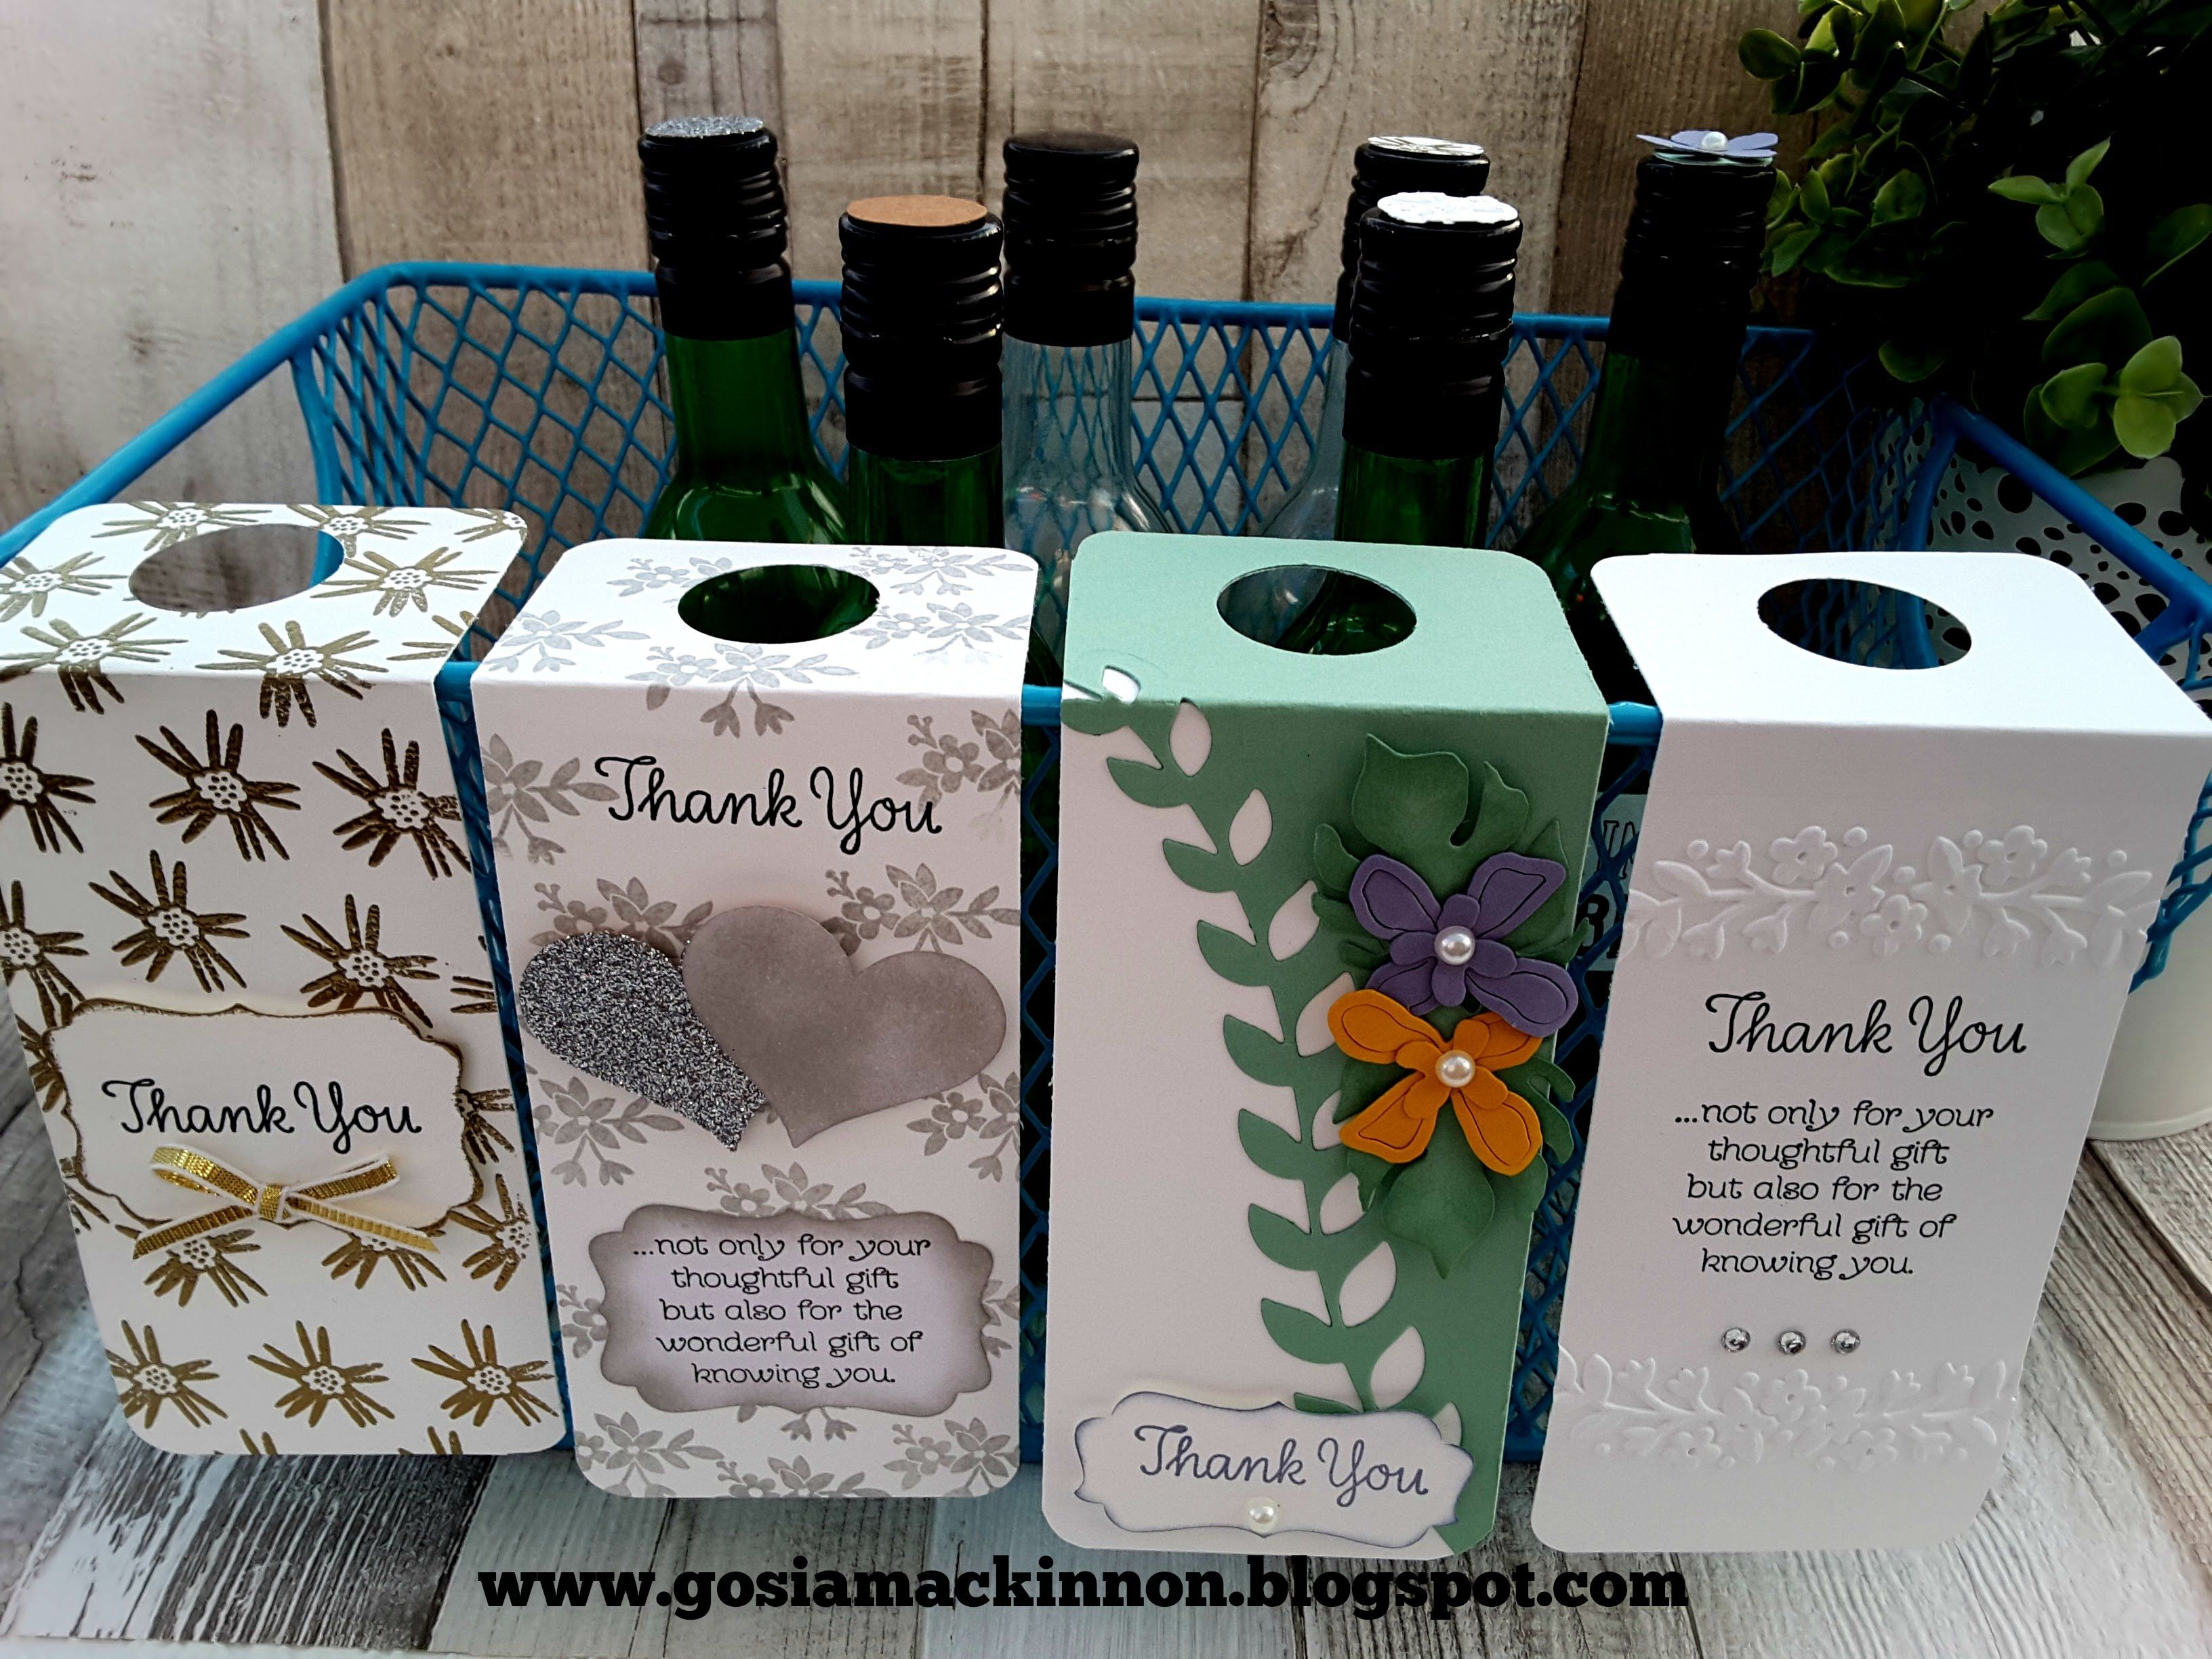 WEDDING FAVOR WINE BOTTLE LABEL & TAGS IDEA WITH STAMPIN ' UP!